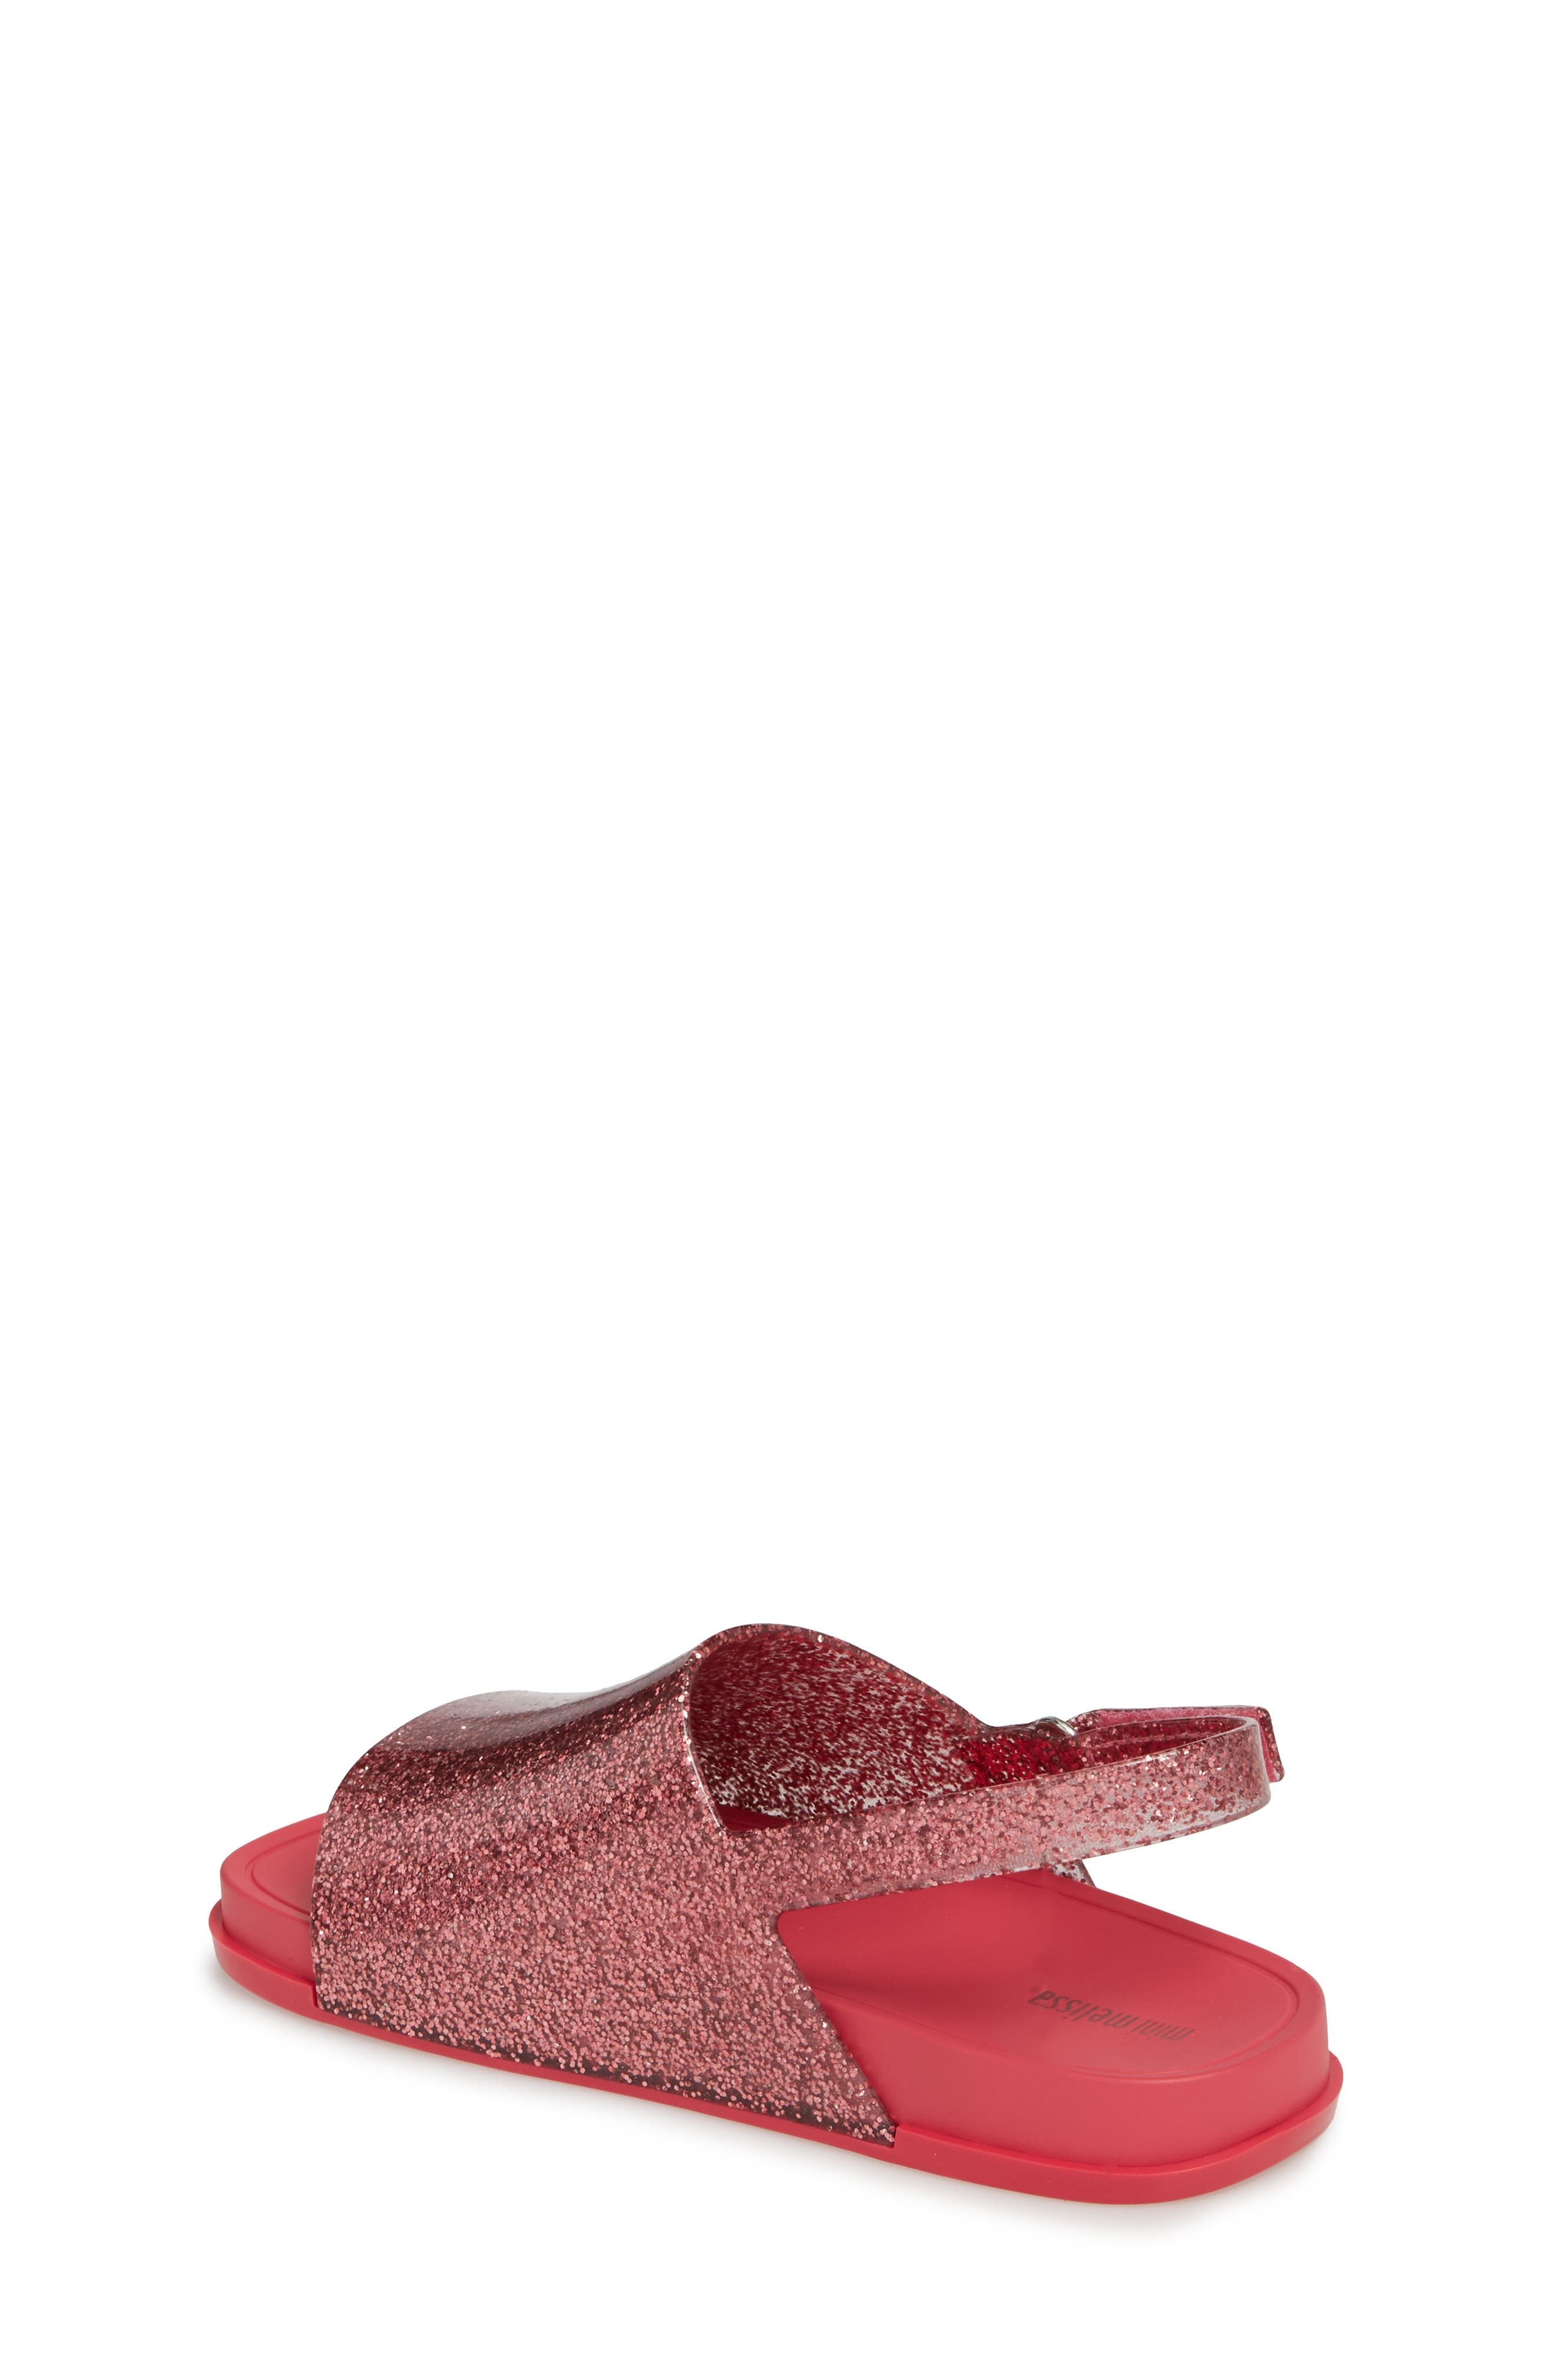 Mini Beach Sandal,                             Alternate thumbnail 2, color,                             Pink Glitter